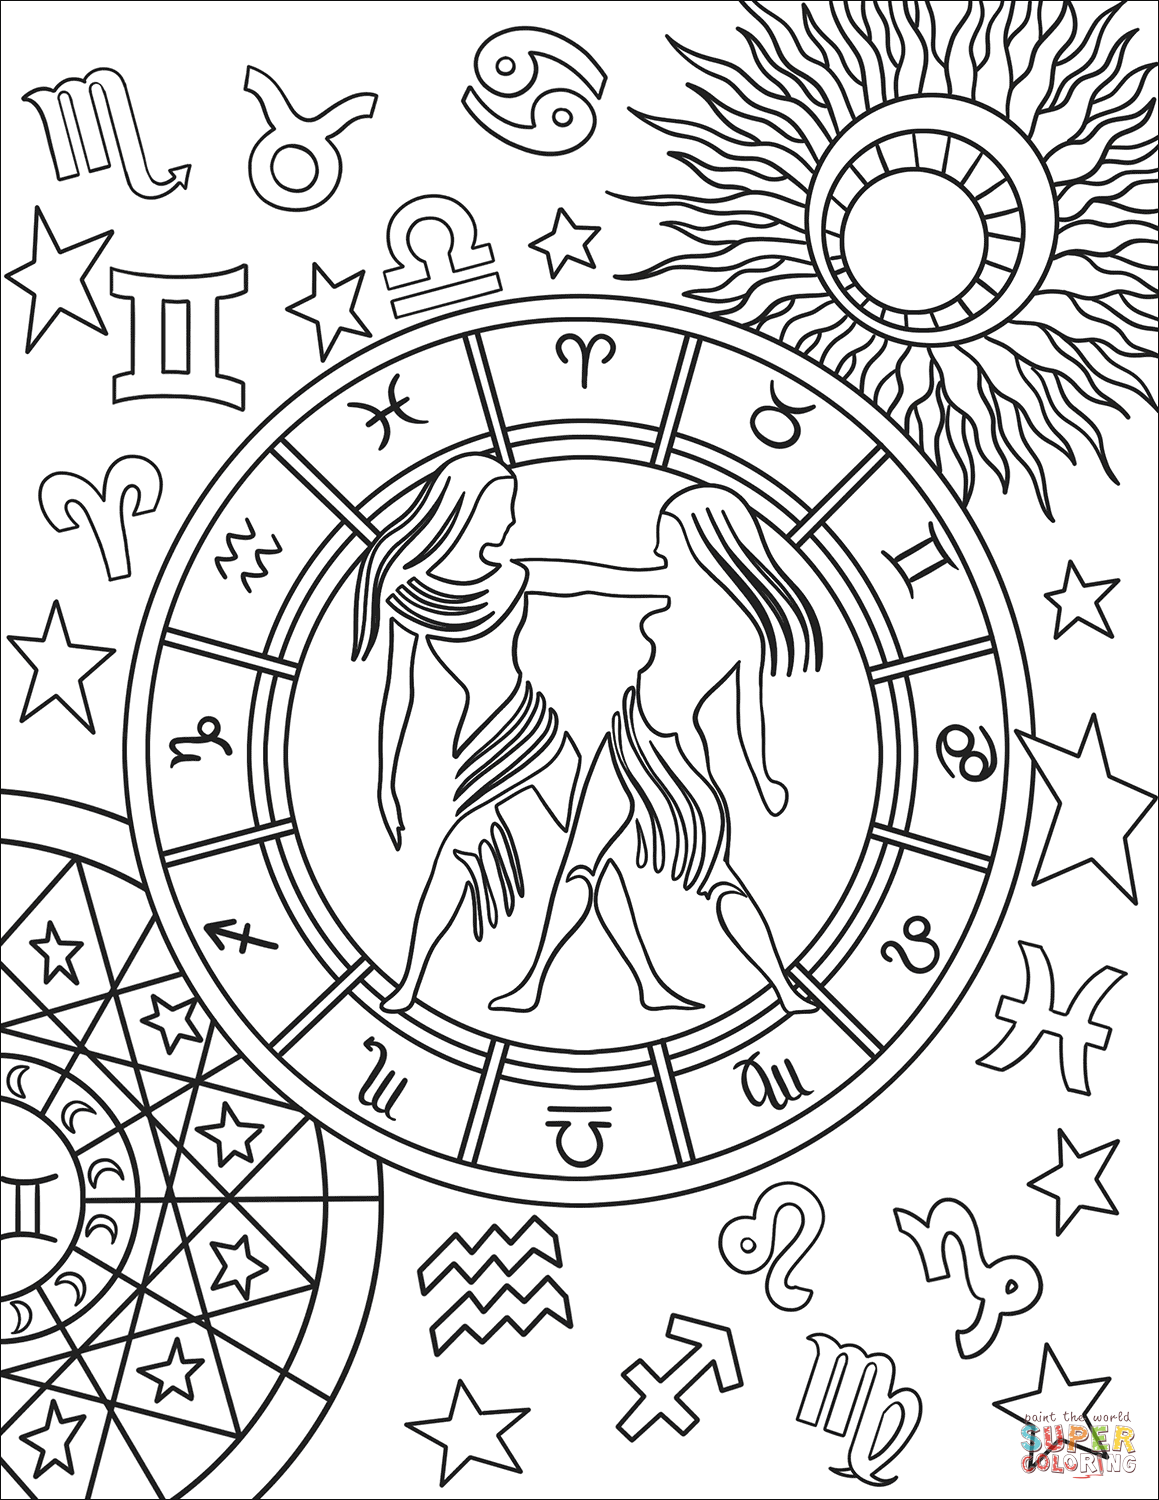 Gemini Zodiac Sign Coloring Page Free Printable Coloring Zodiac Signs Colors Love Coloring Pages Coloring Pages